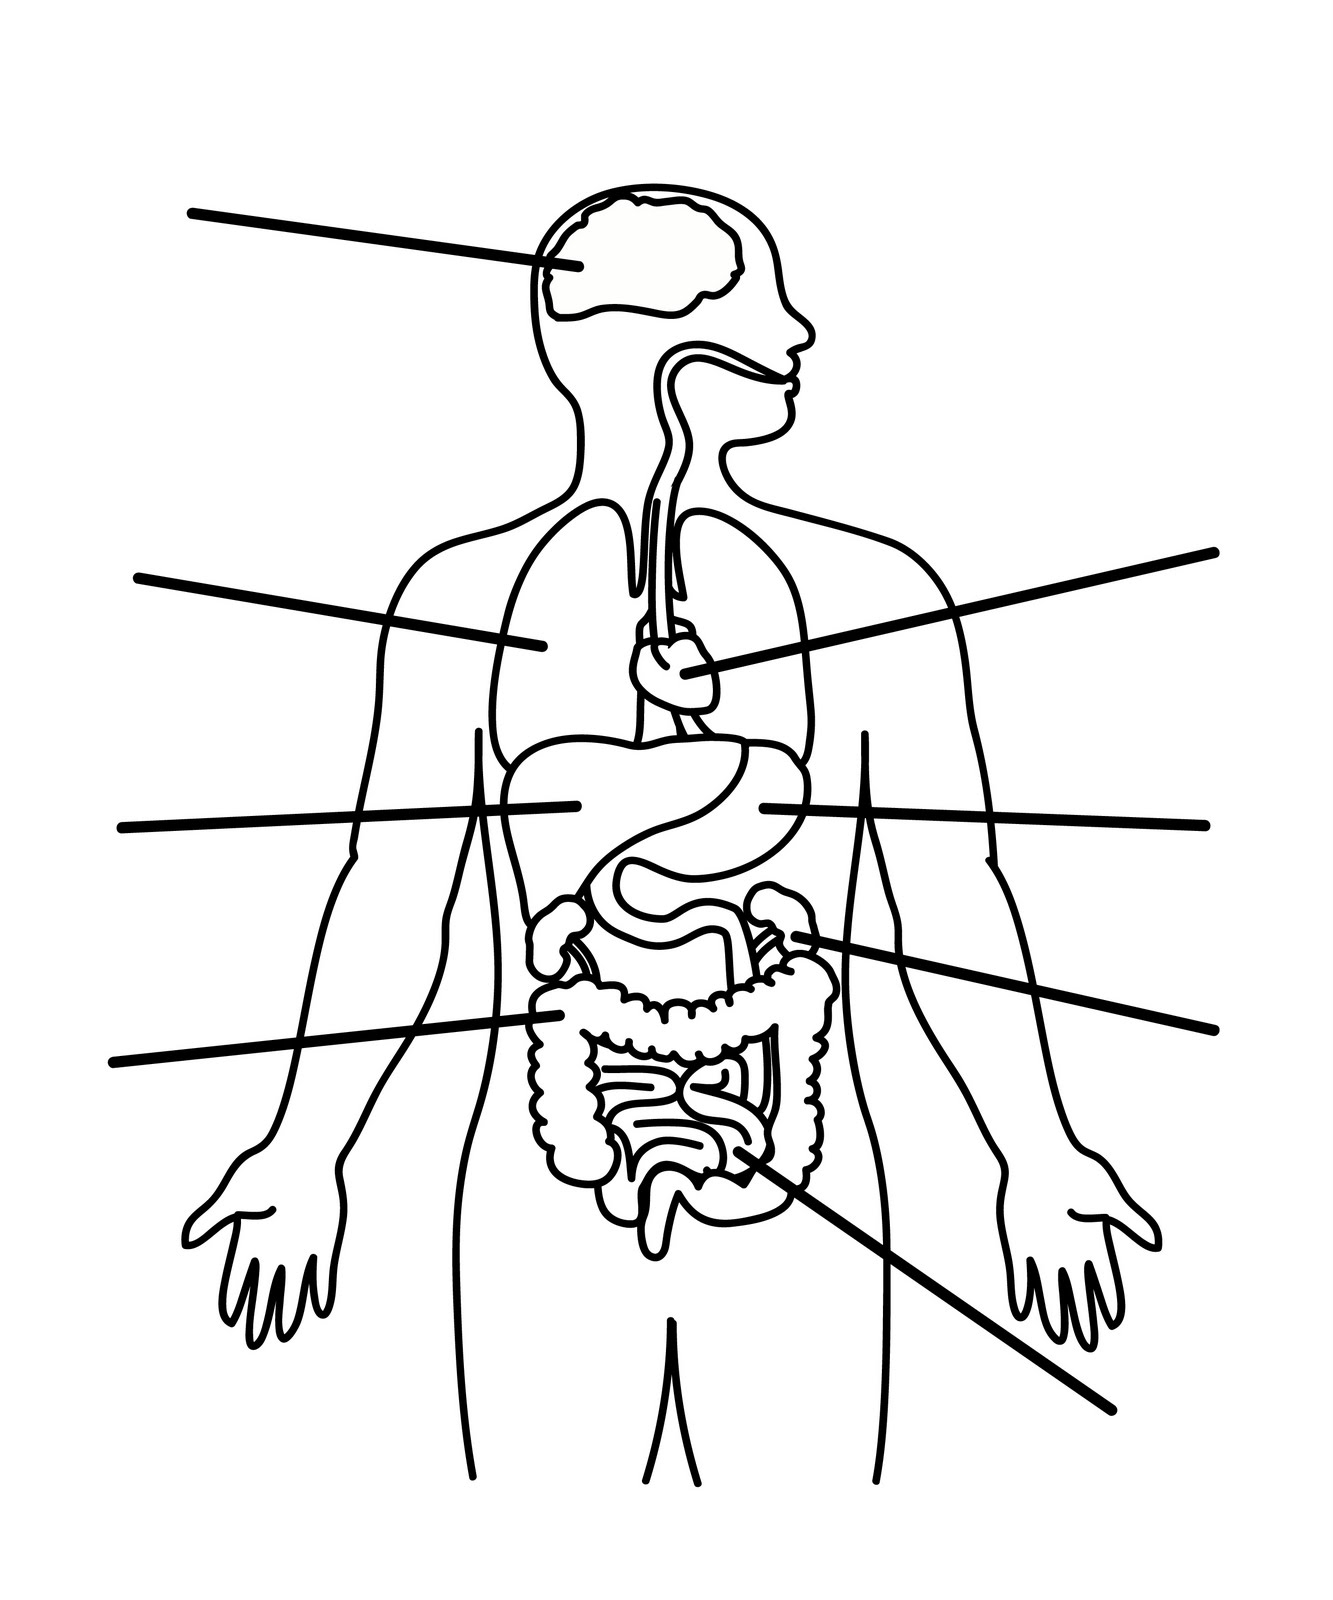 human body coloring pages - drawing human body coloring